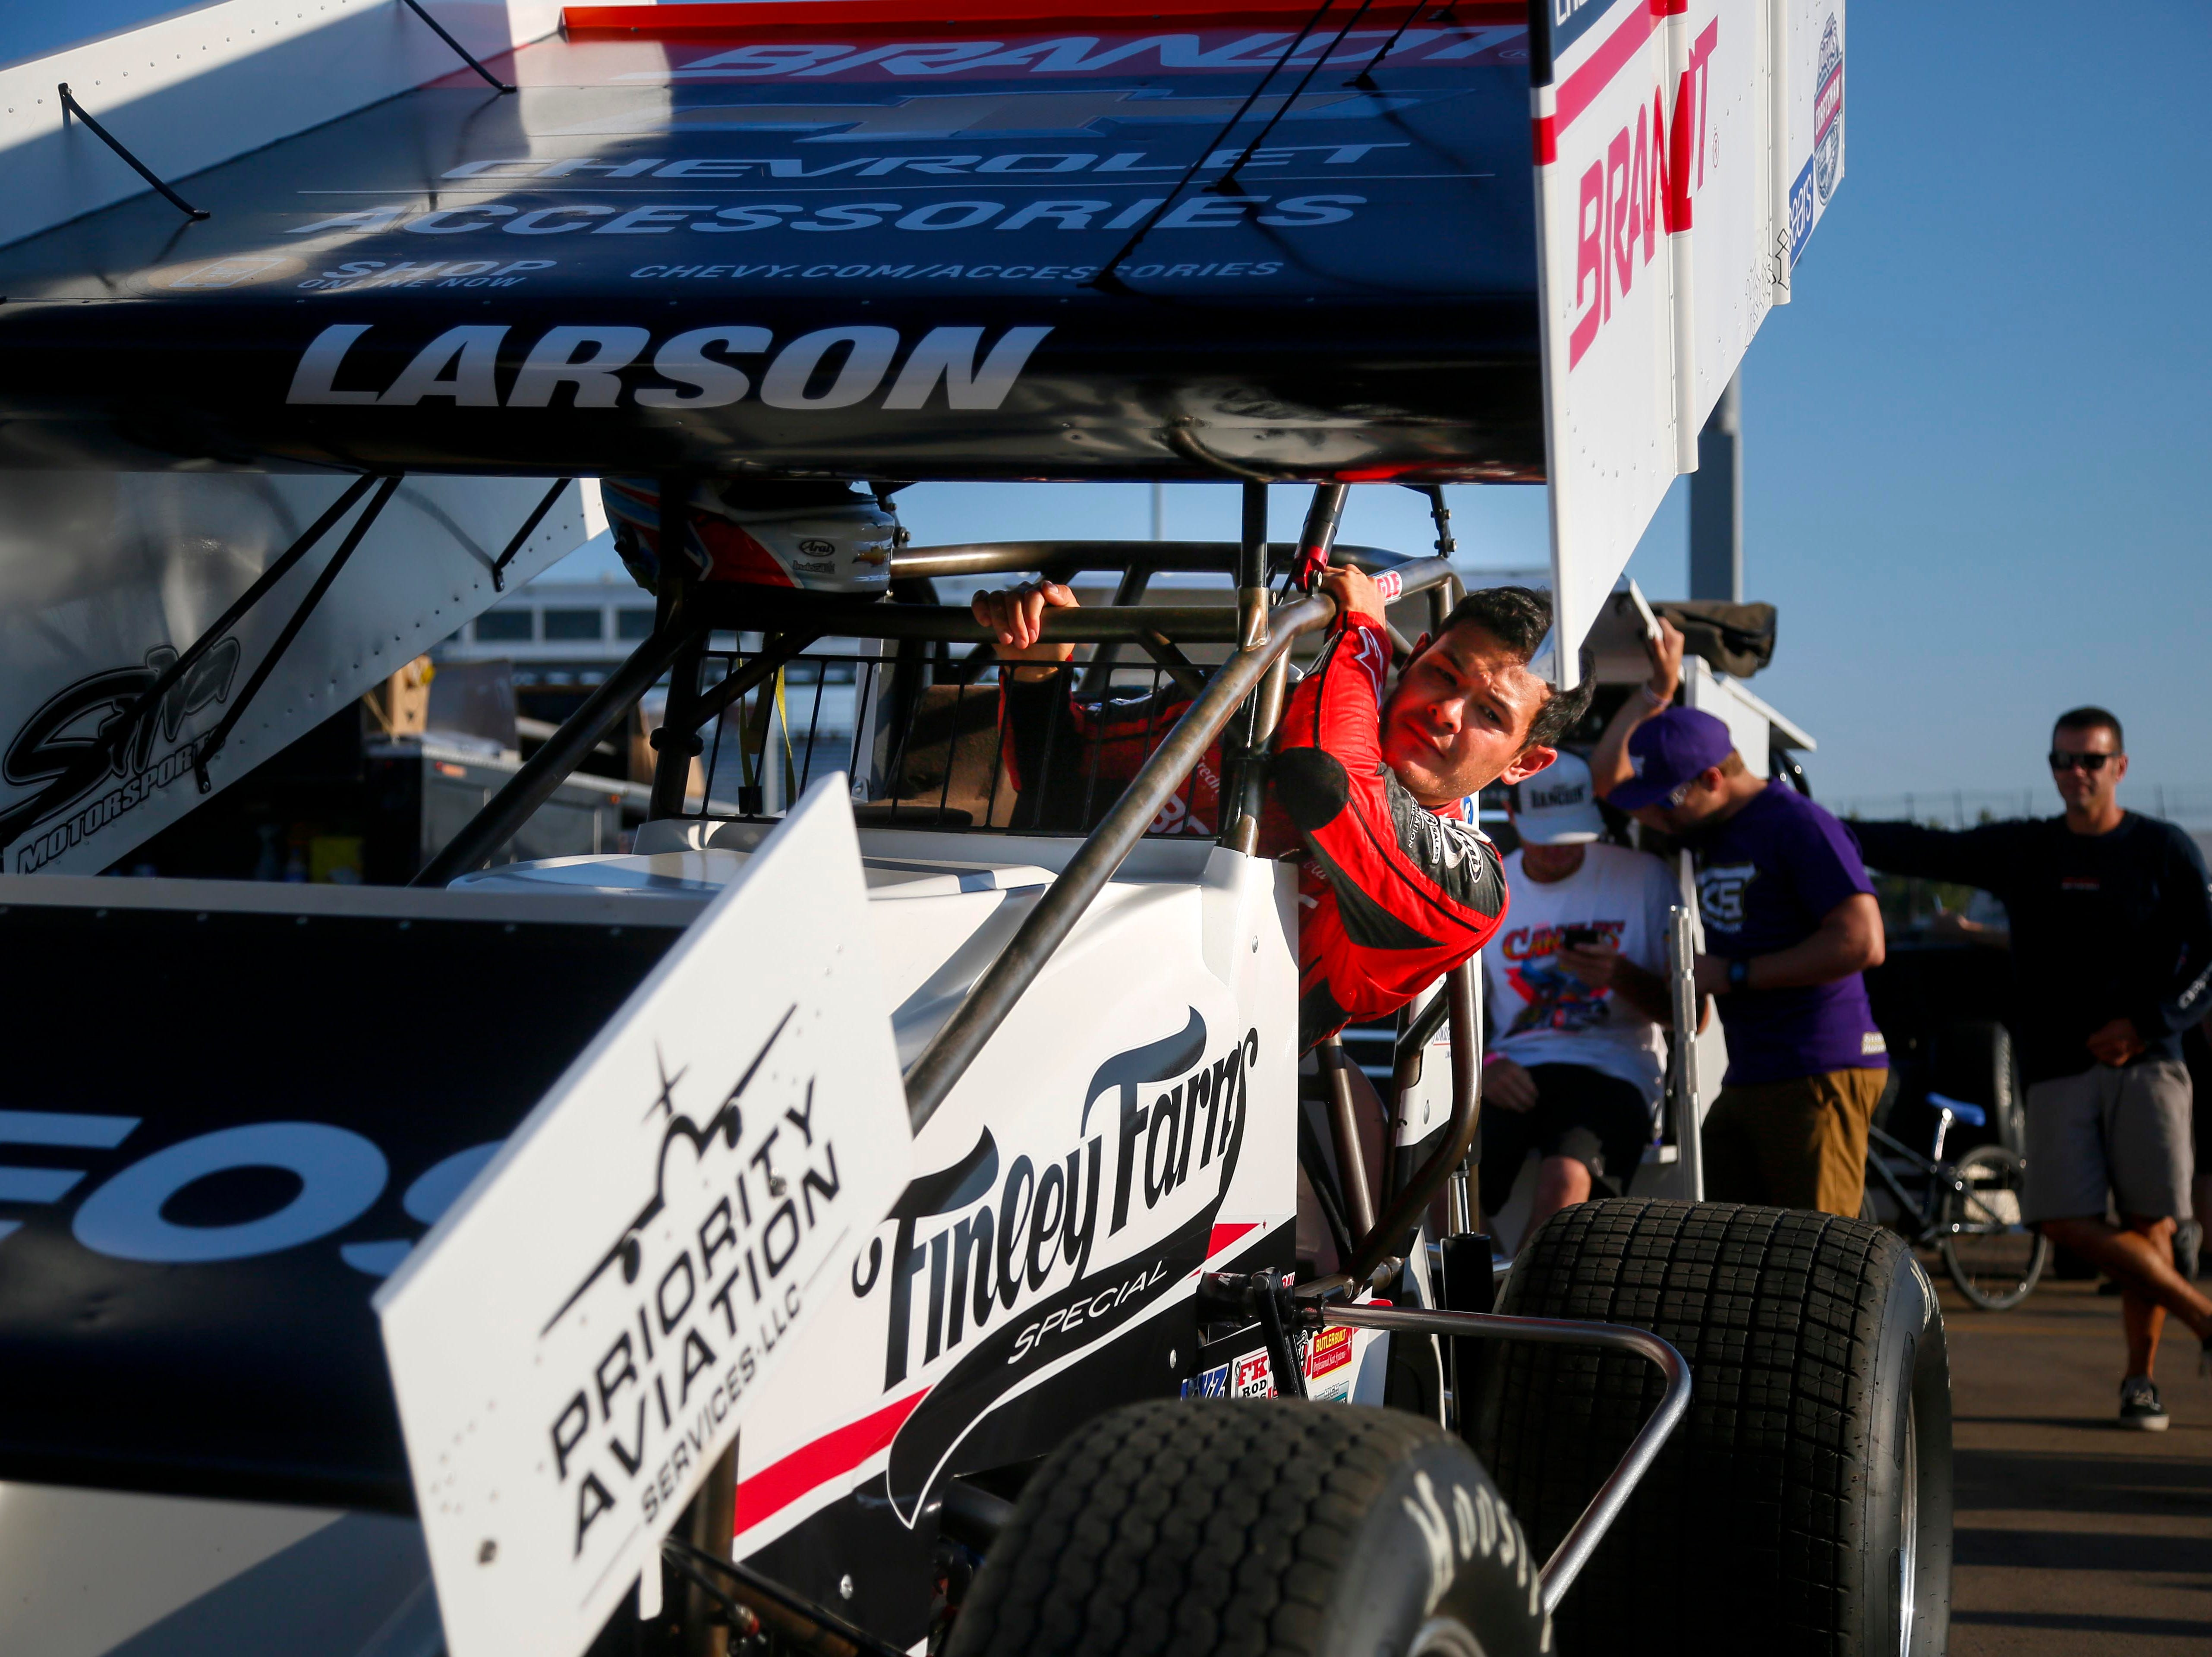 Kyle Larson climbs into his car during the Knoxville Nationals Wednesday, Aug. 8, 2018.